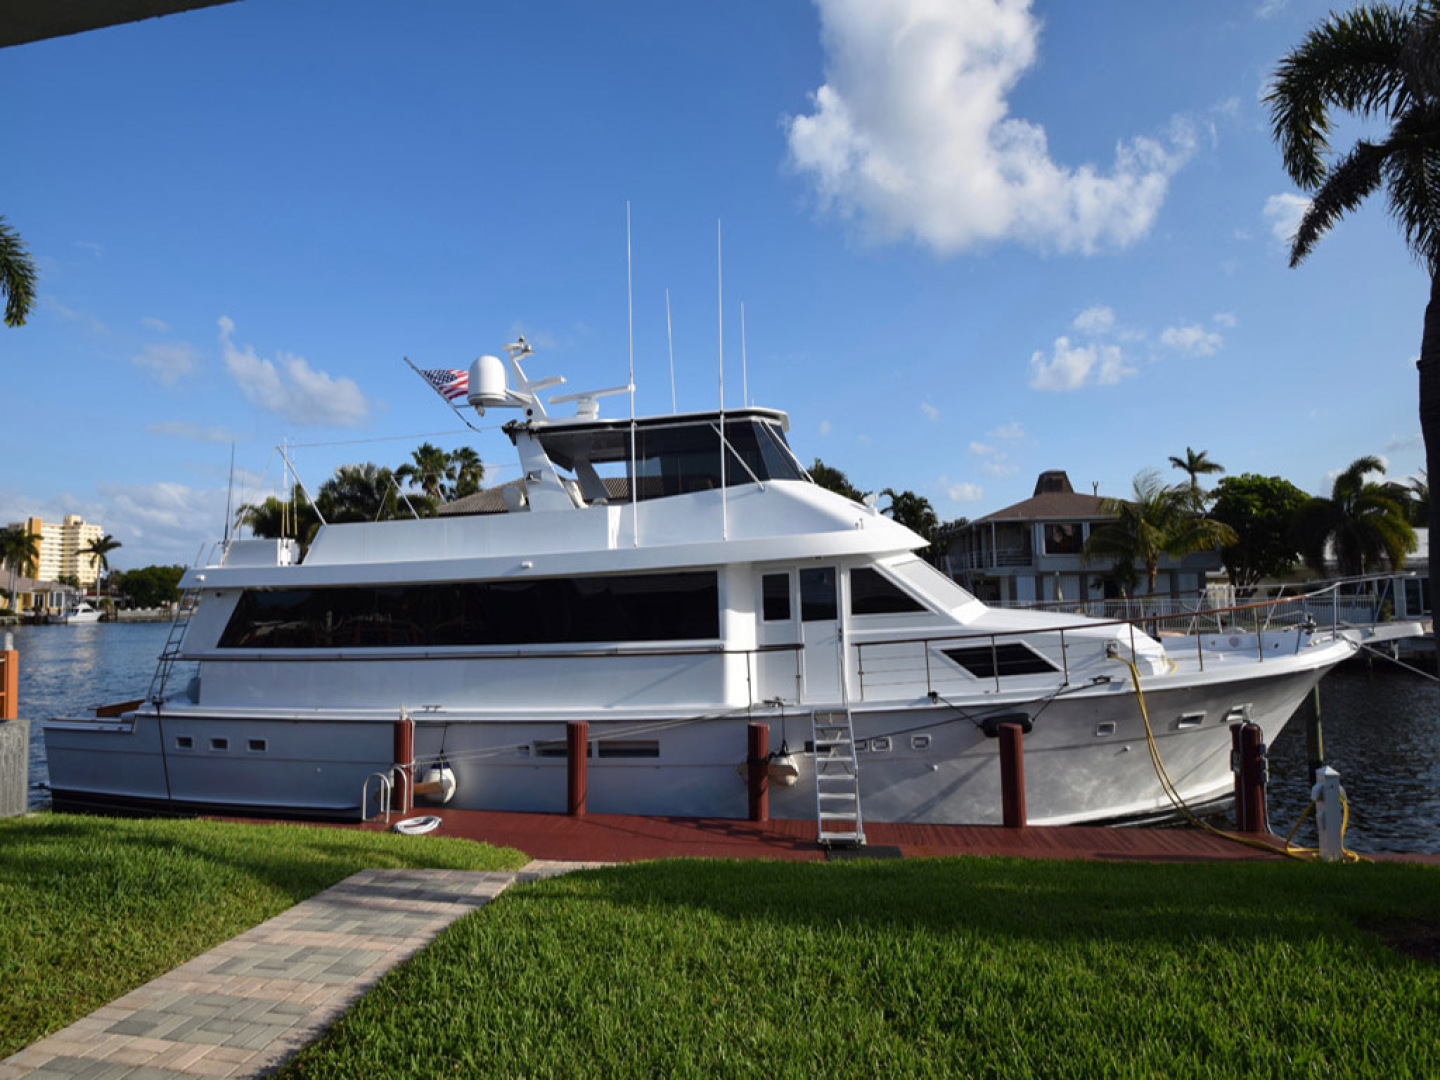 Hatteras-Cockpit Motoryacht 1989-Amelia Boca Raton-Florida-United States-Starboard Side At Dock-1206151 | Thumbnail